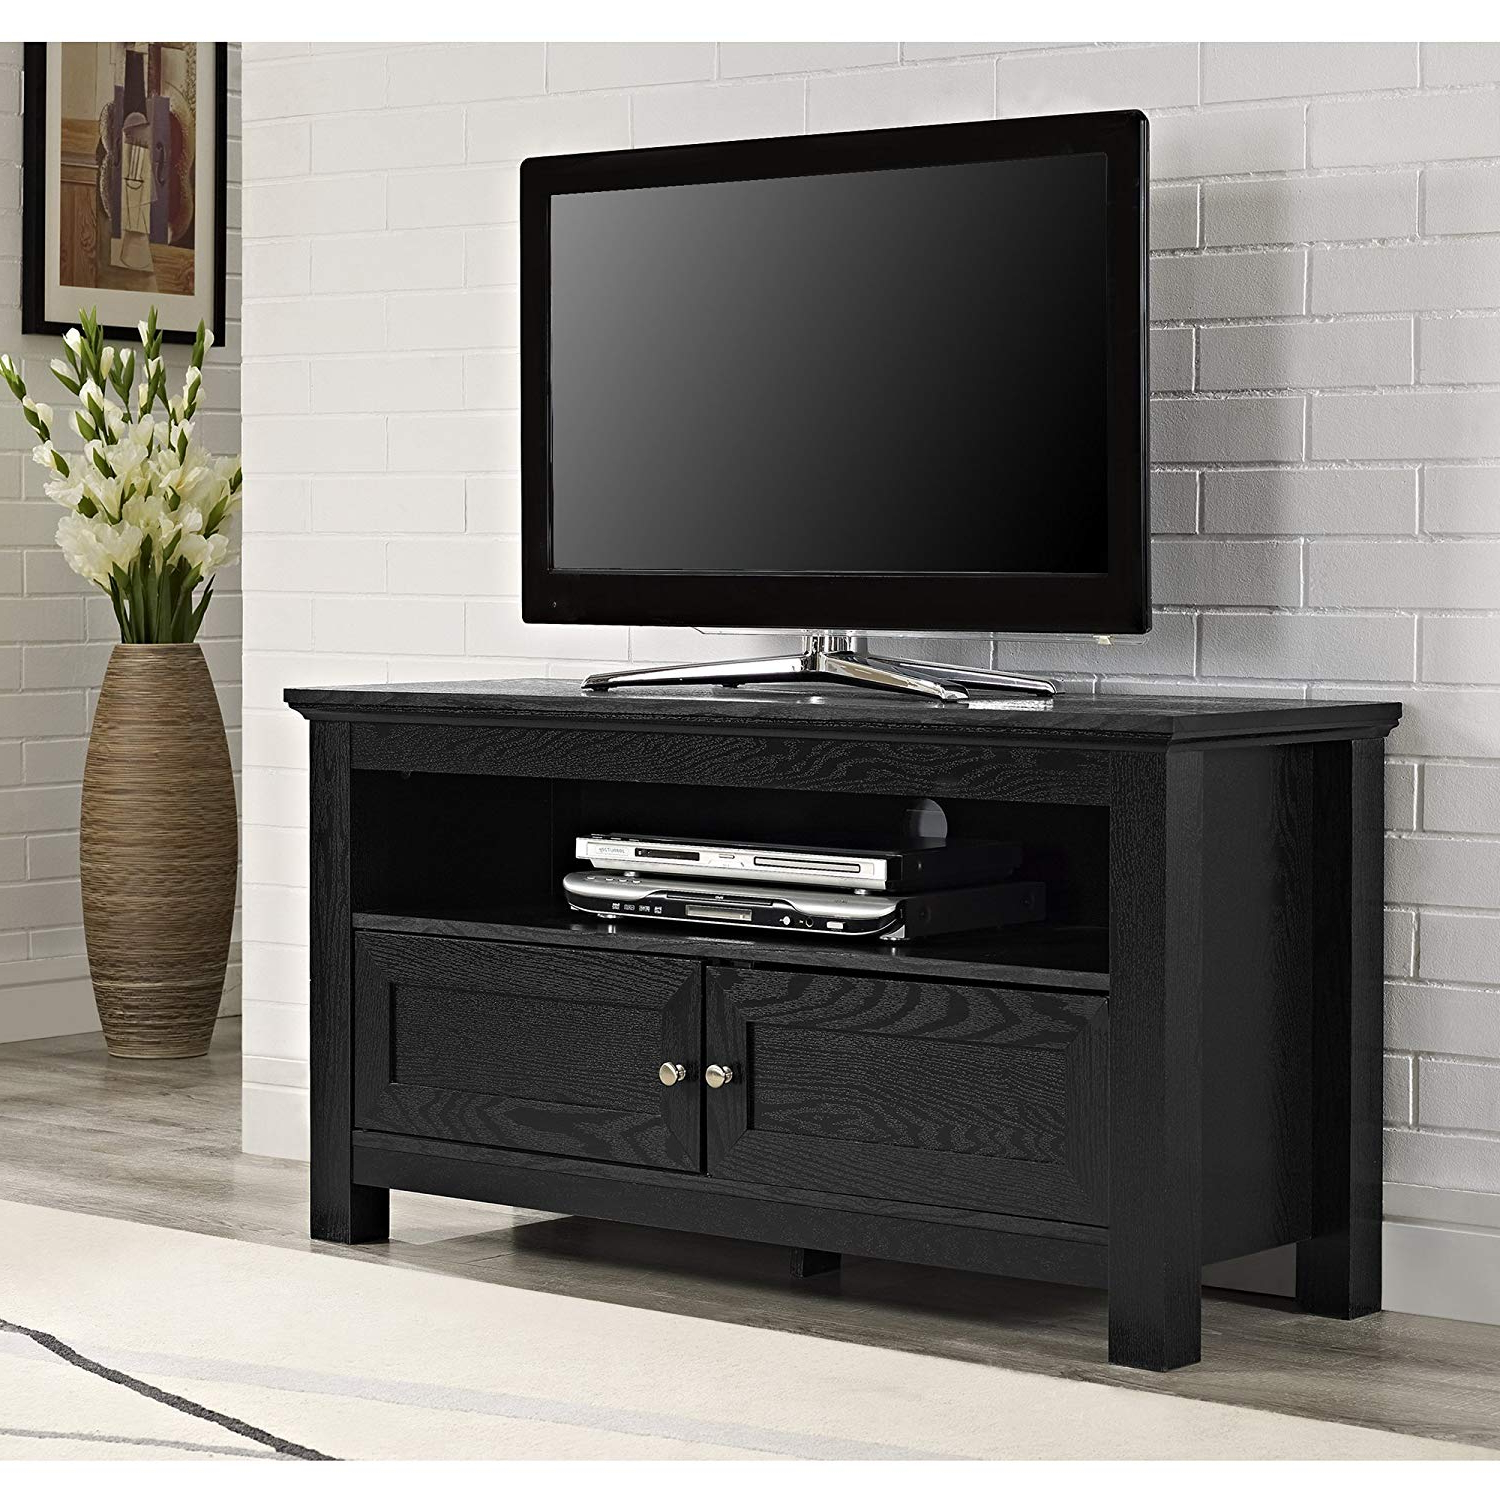 Preferred Small Black Tv Cabinets Pertaining To Amazon: Walker Edison 44 Inches Cortez Tv Stand Console, Black (Gallery 9 of 20)